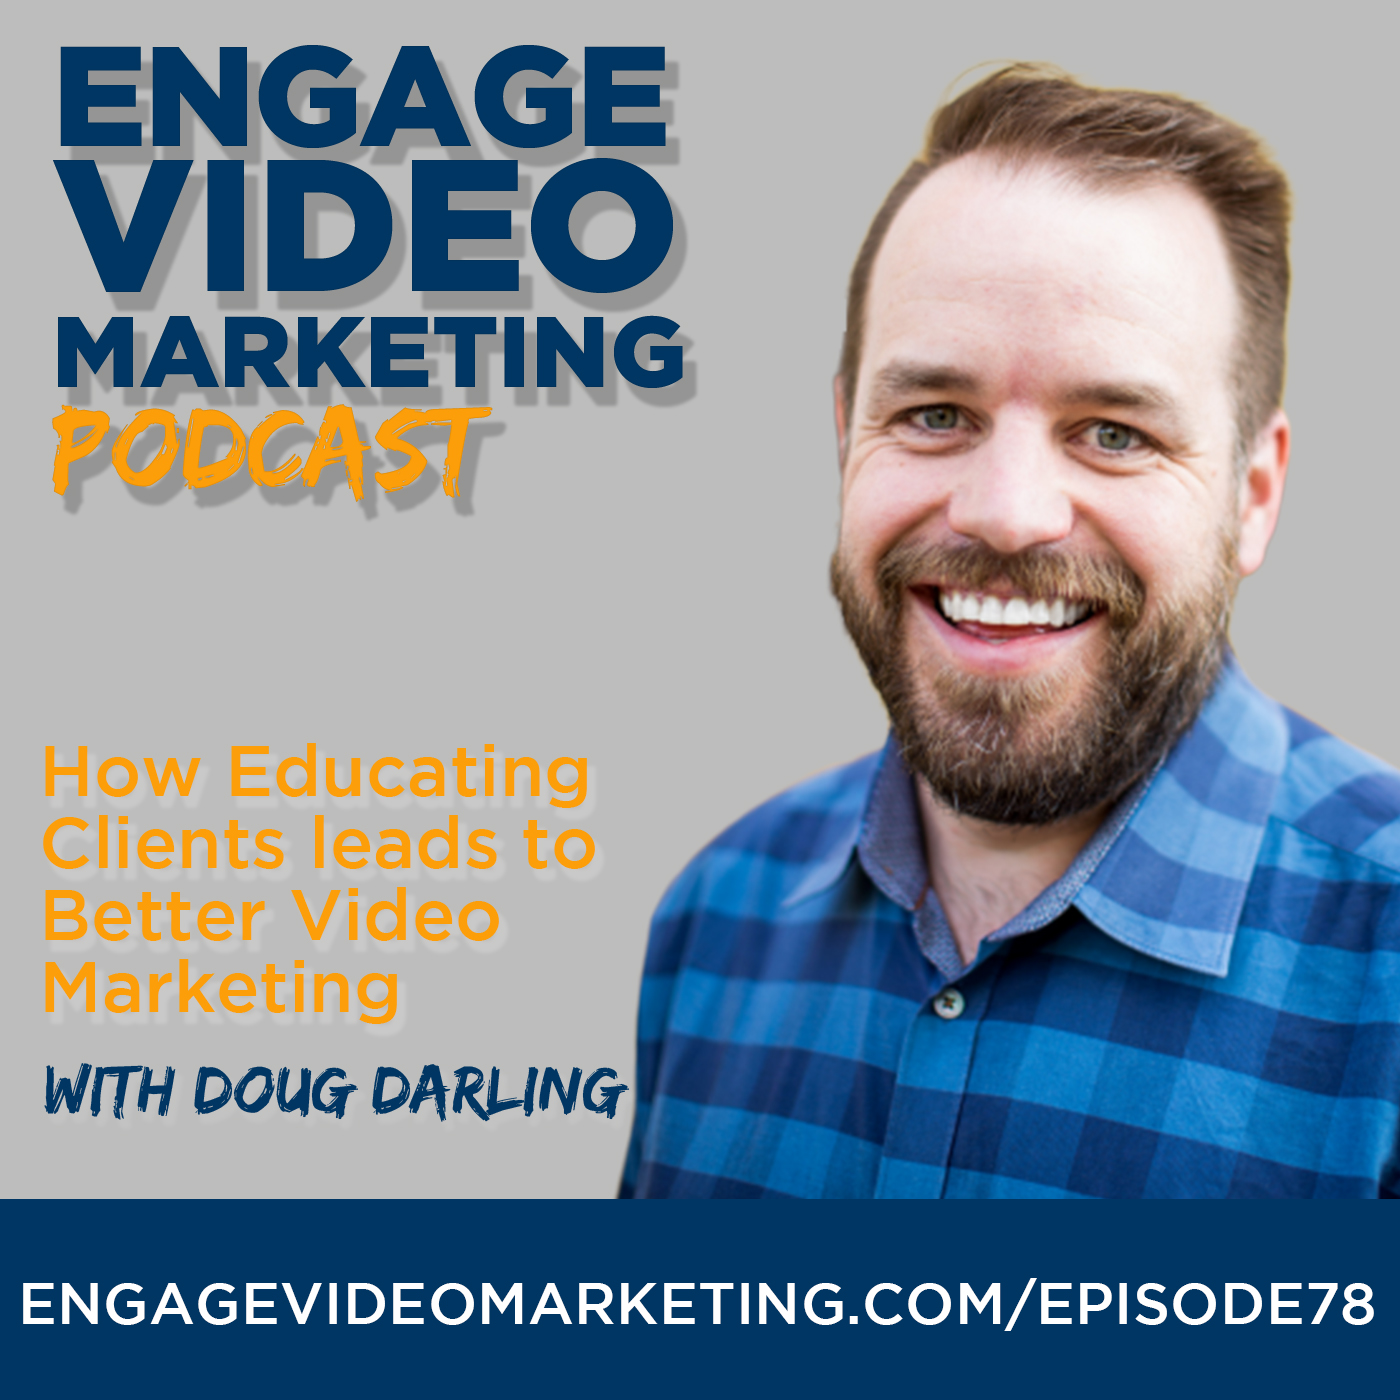 How Educating Clients leads to Better Video Marketing with Doug Darling